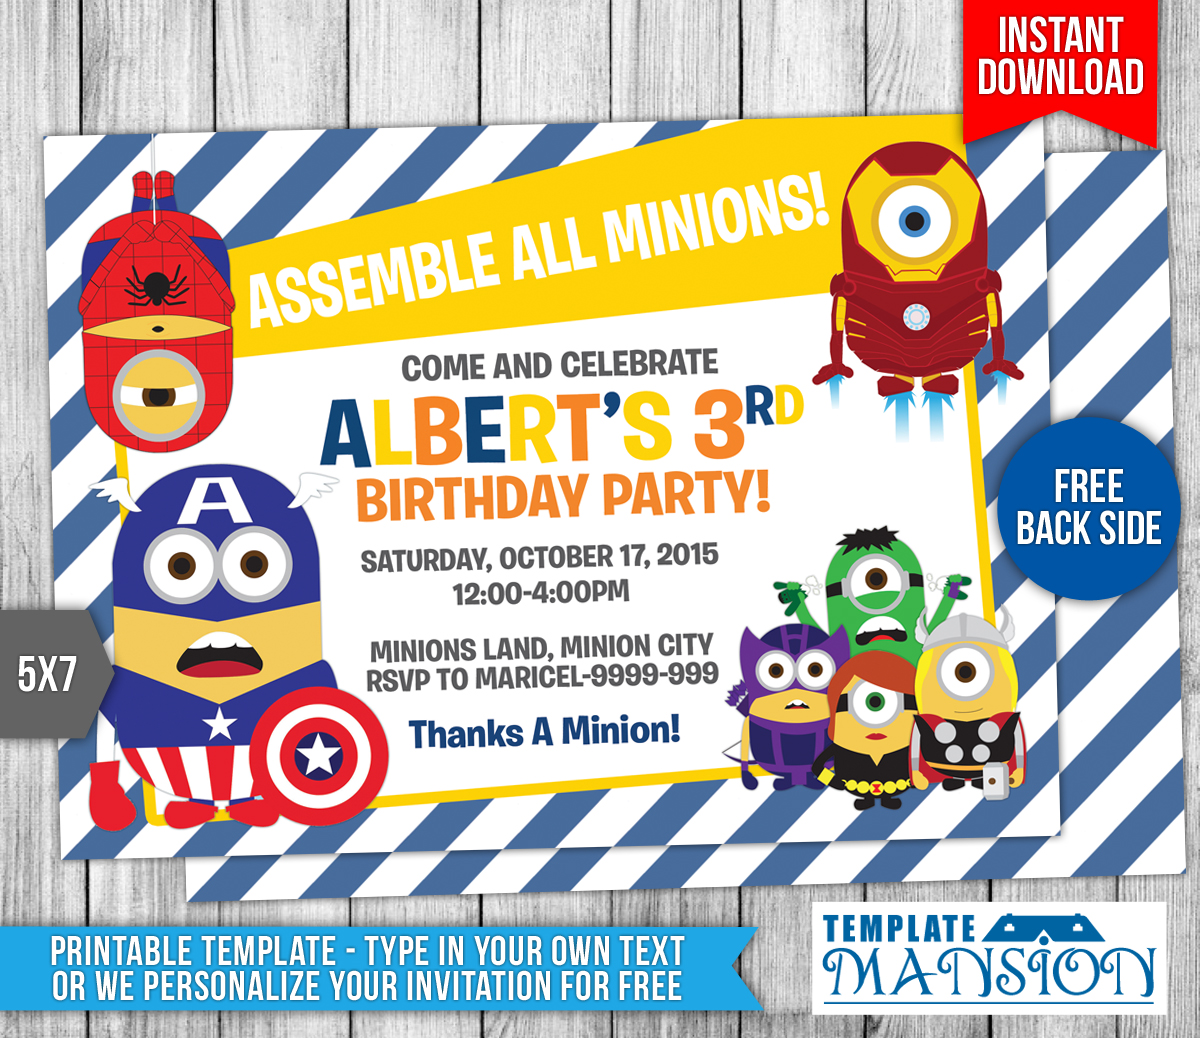 minions avengers birthday invitation template 9 by templatemansion